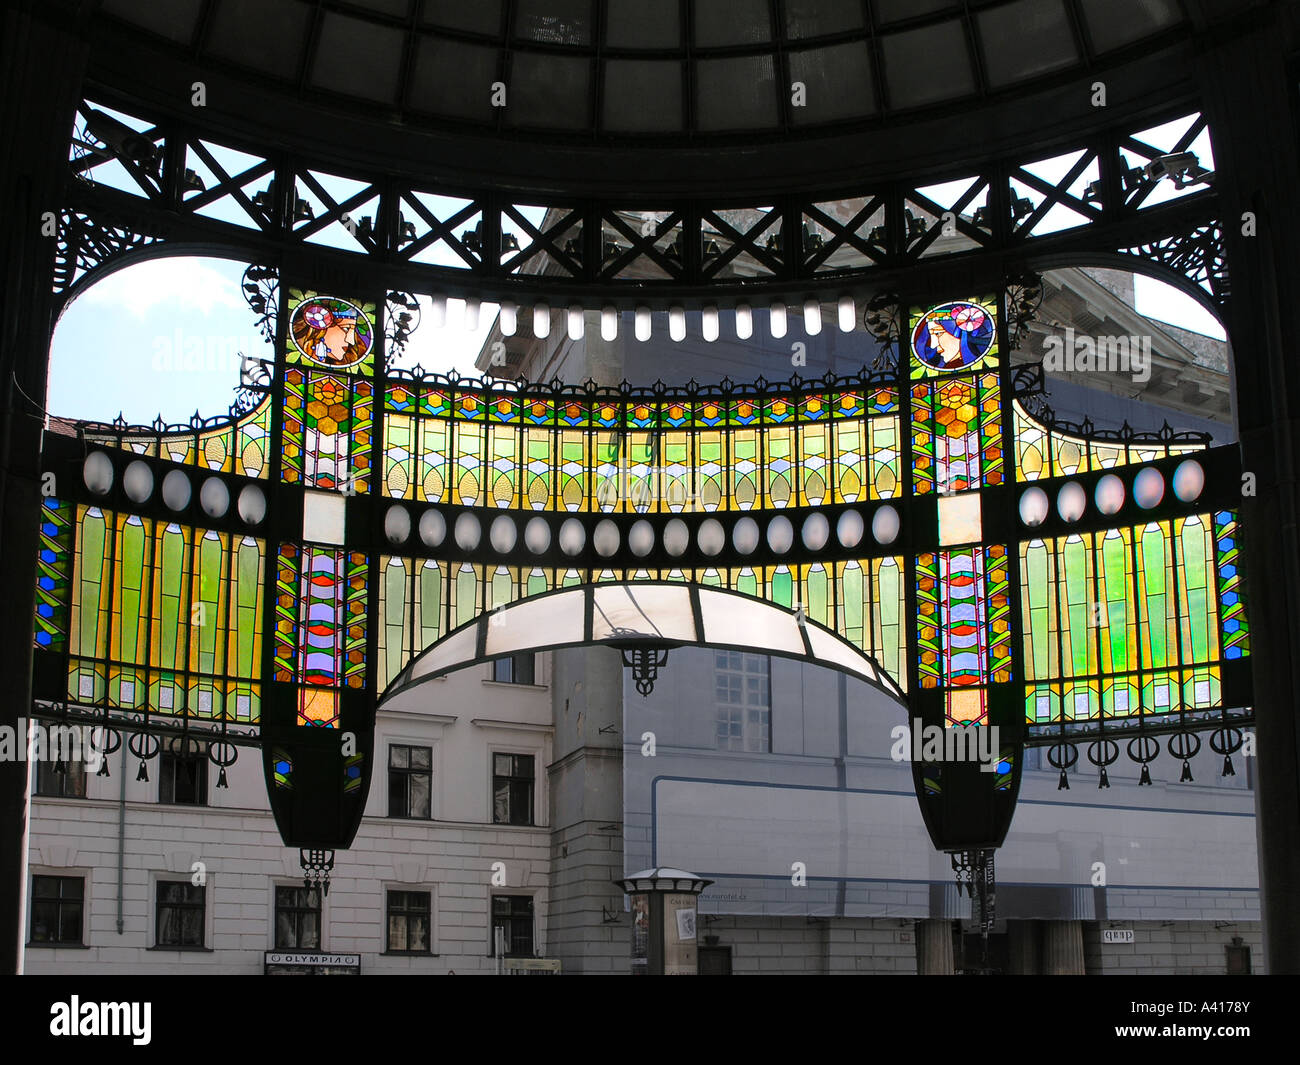 Stained glass screen over the main entrance Prague Old Town Municipal House Praha Czech Republic Europe EU Travel Stock Photo